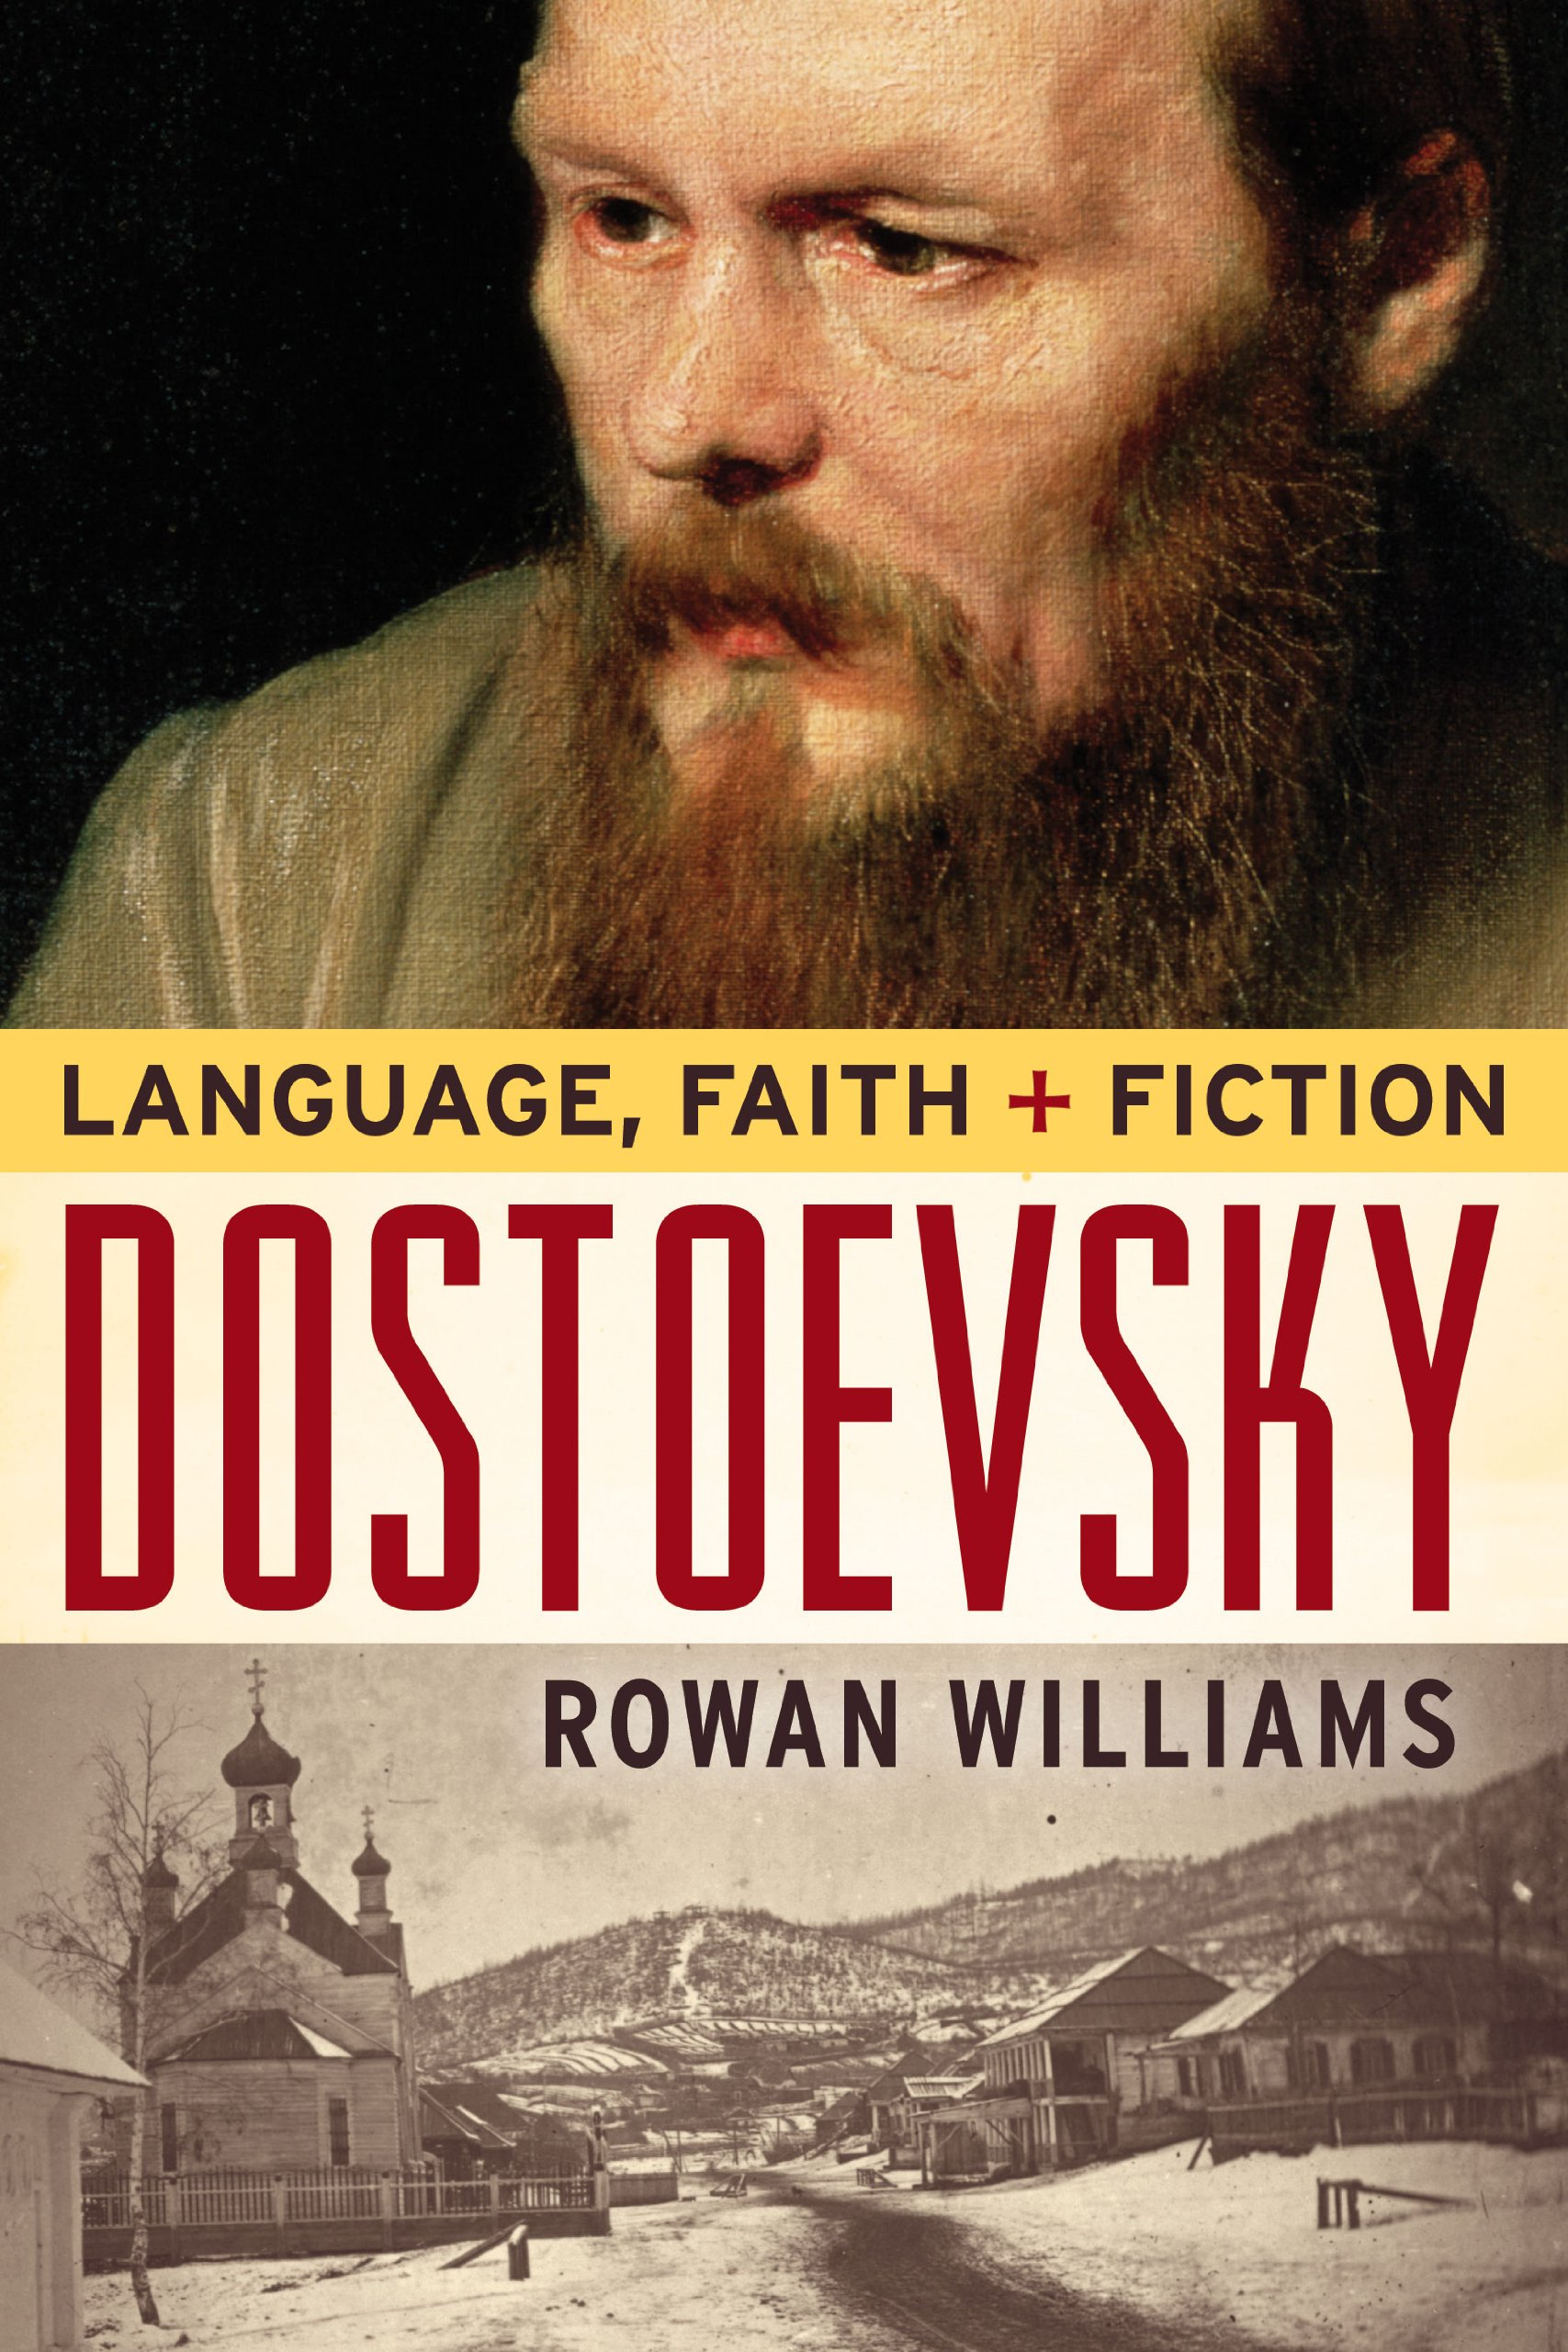 Dostoevsky: Language, Faith, and Fiction (Making of the Christian Imagination) by Baylor University Press